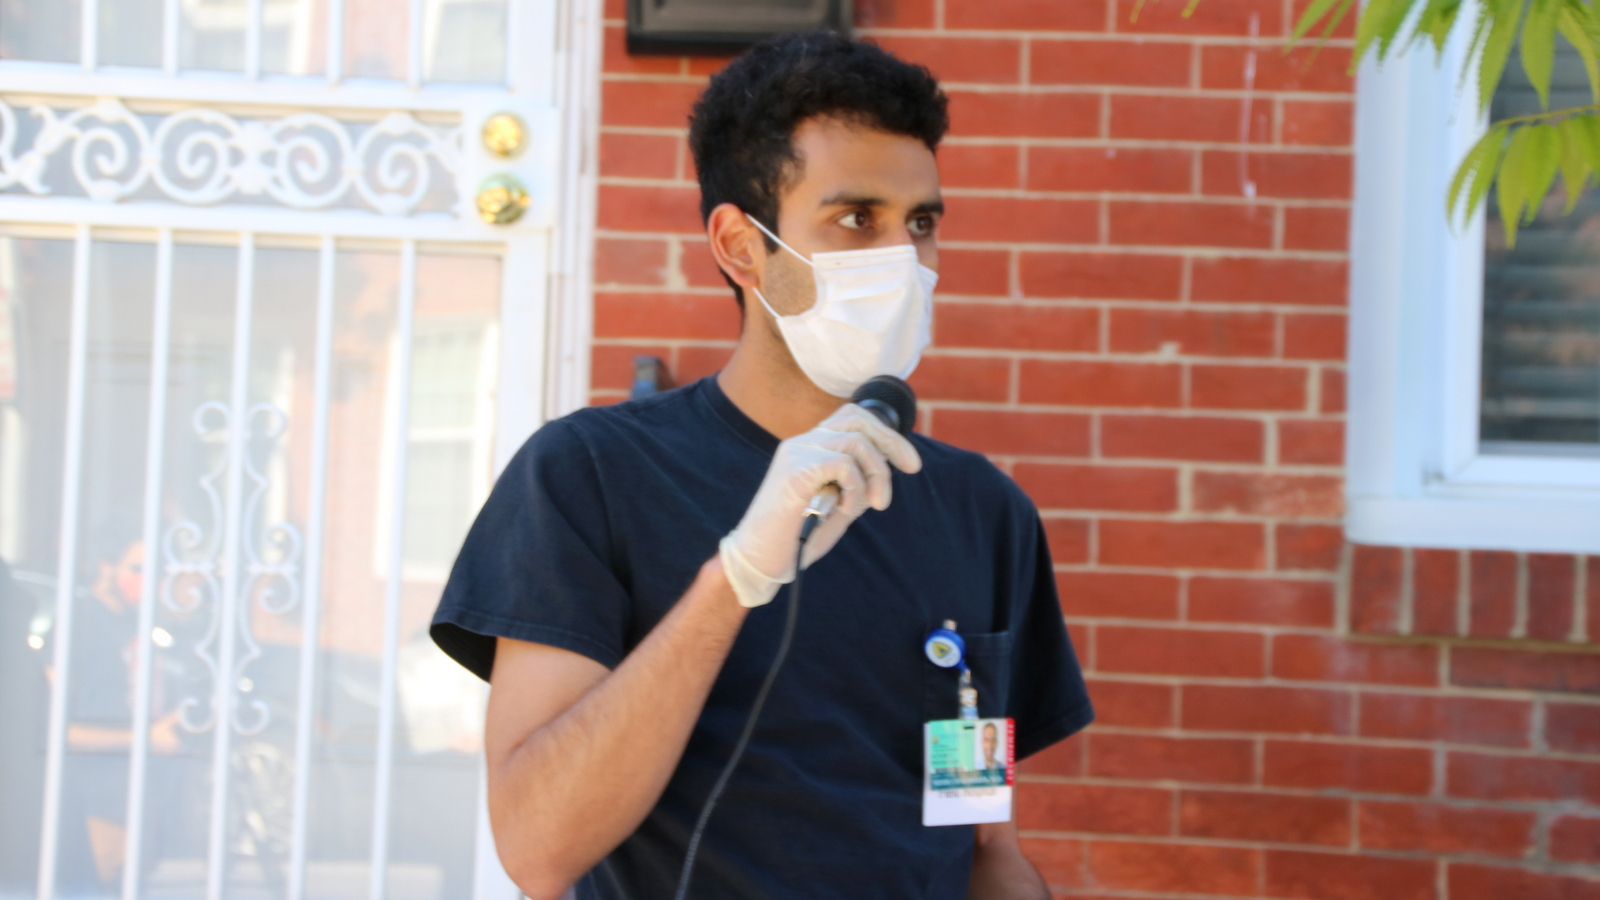 Mihir Chaudhary, a Johns Hopkins physician, addresses the crowd outside Jack Young's house. (Louis Krauss)